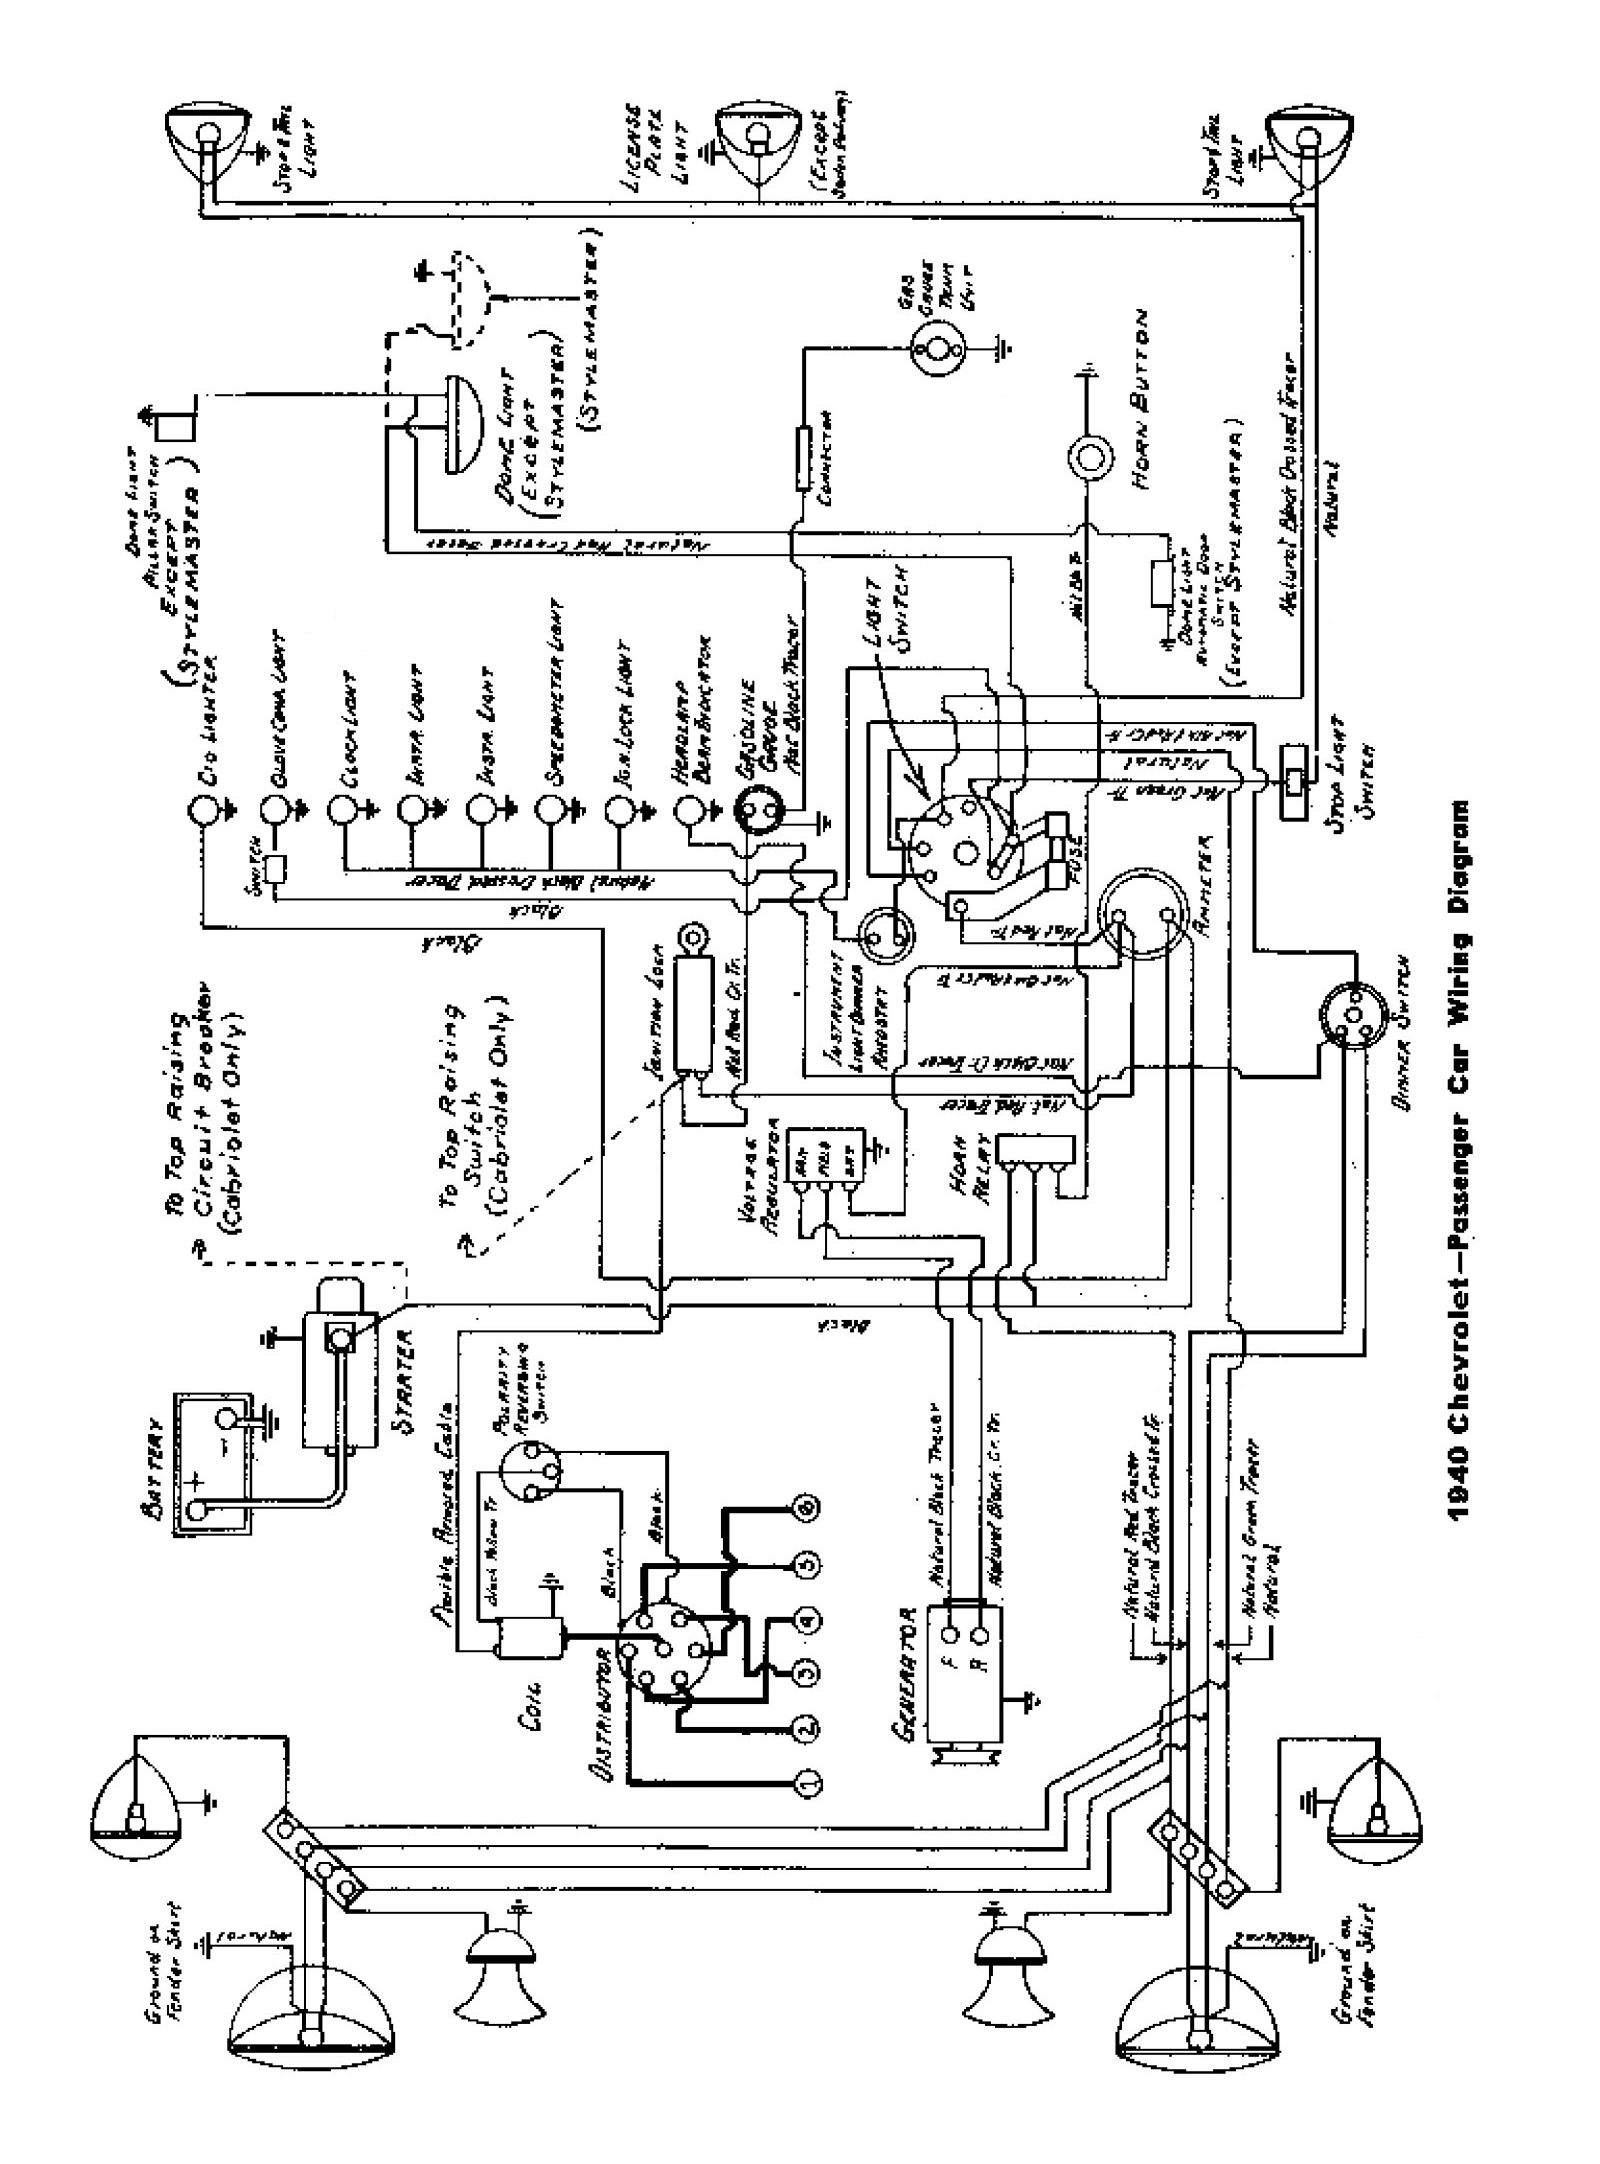 1940 Studebaker Wiring Diagram Schematic Free For You Winnebago Ac Picture Trusted Rh 7 4 Gartenmoebel Rupp De Generator 2008 Outlook